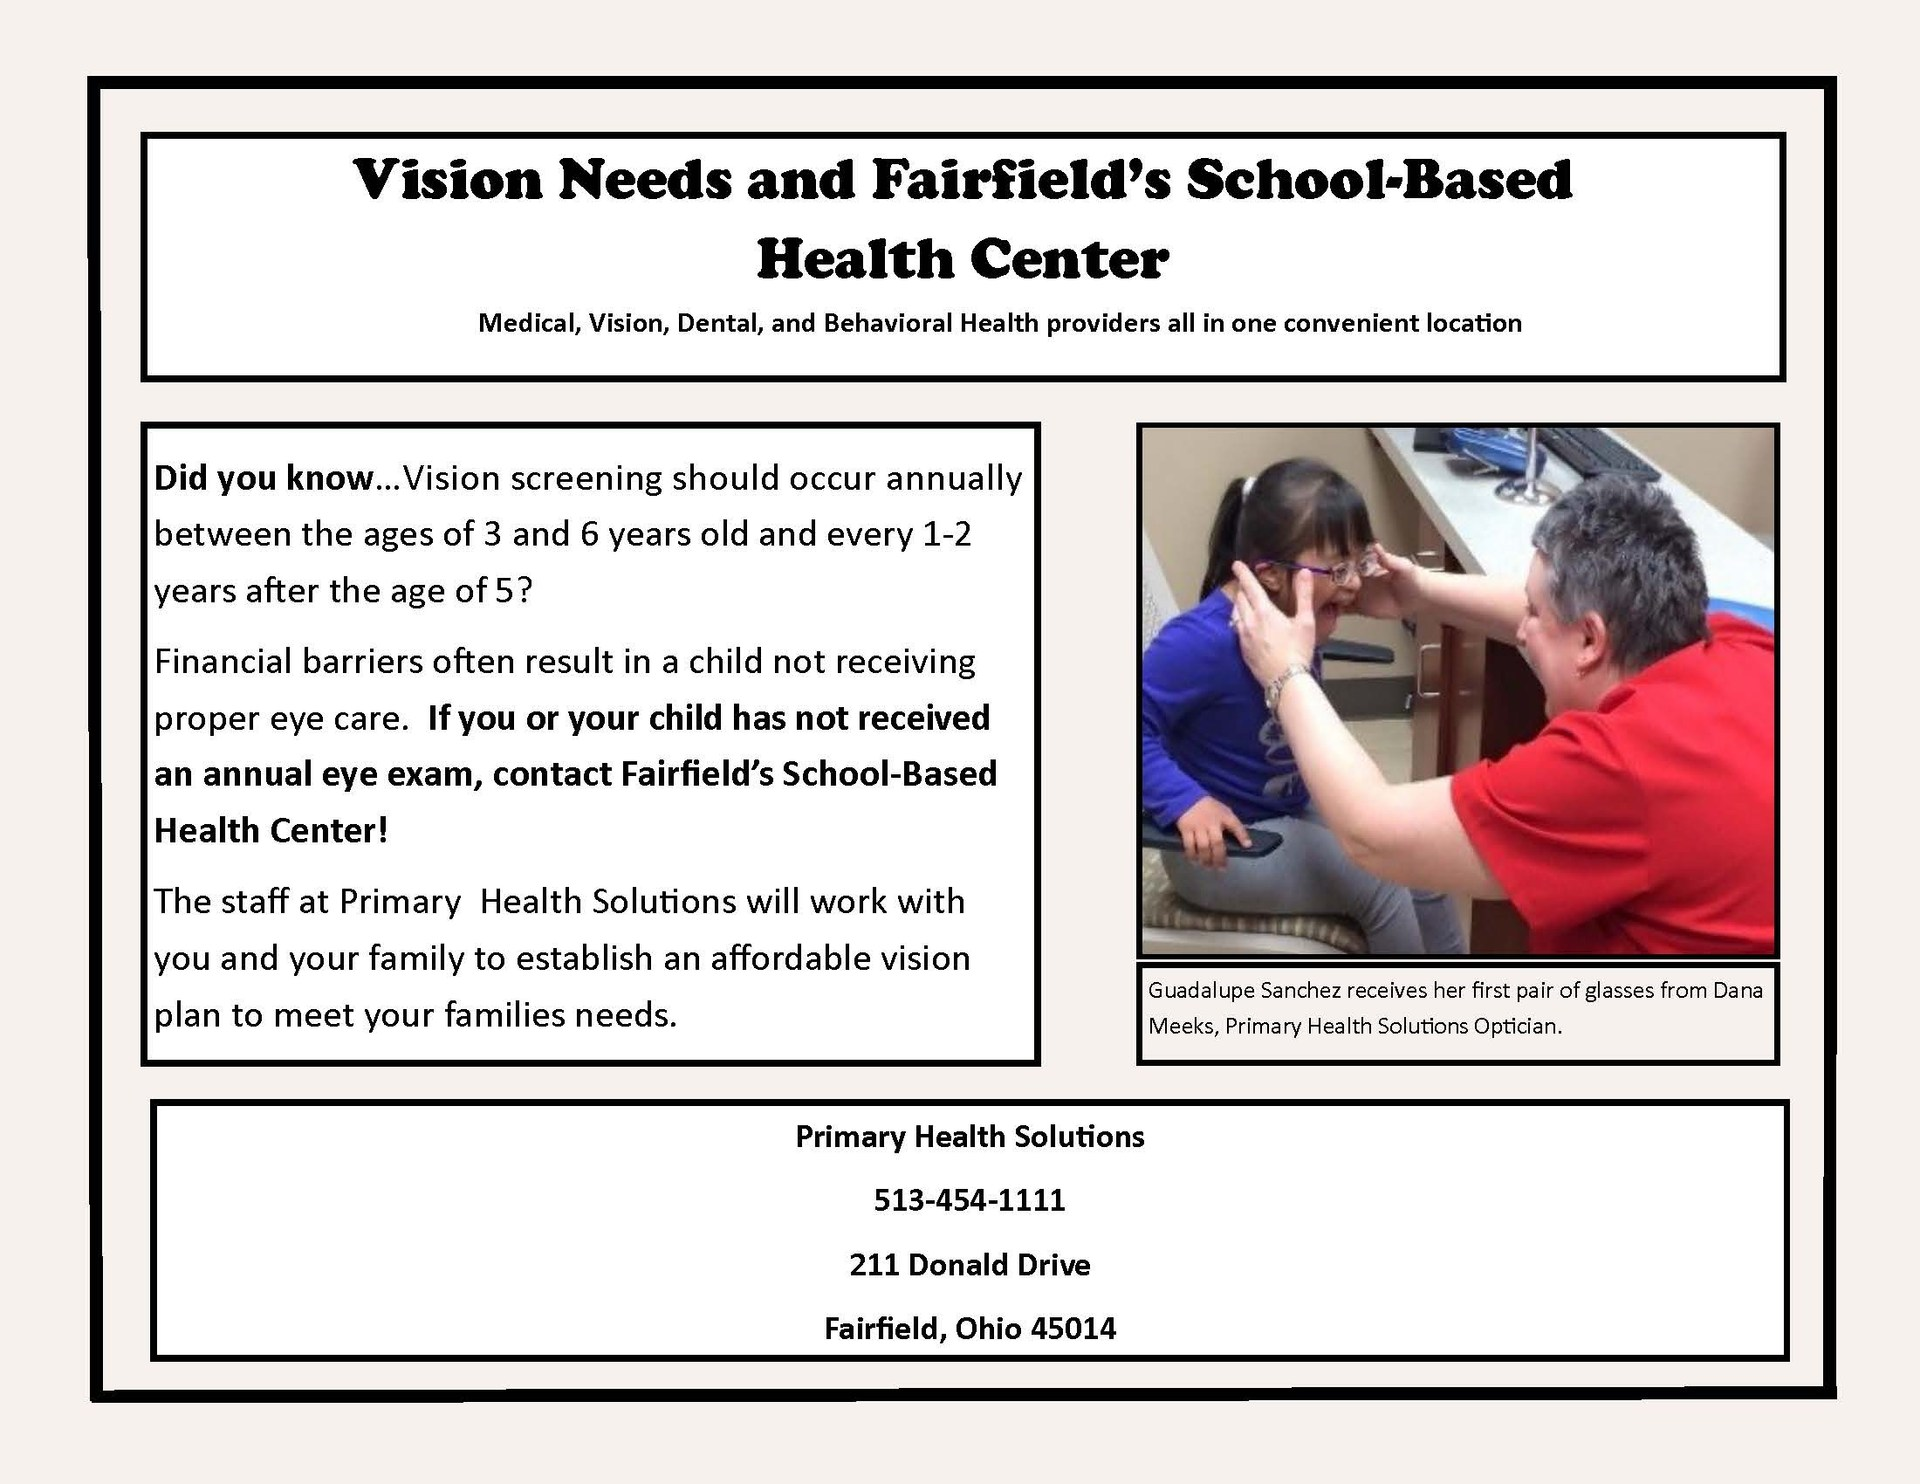 Image of a flyer for our school based health center giving information about vision services